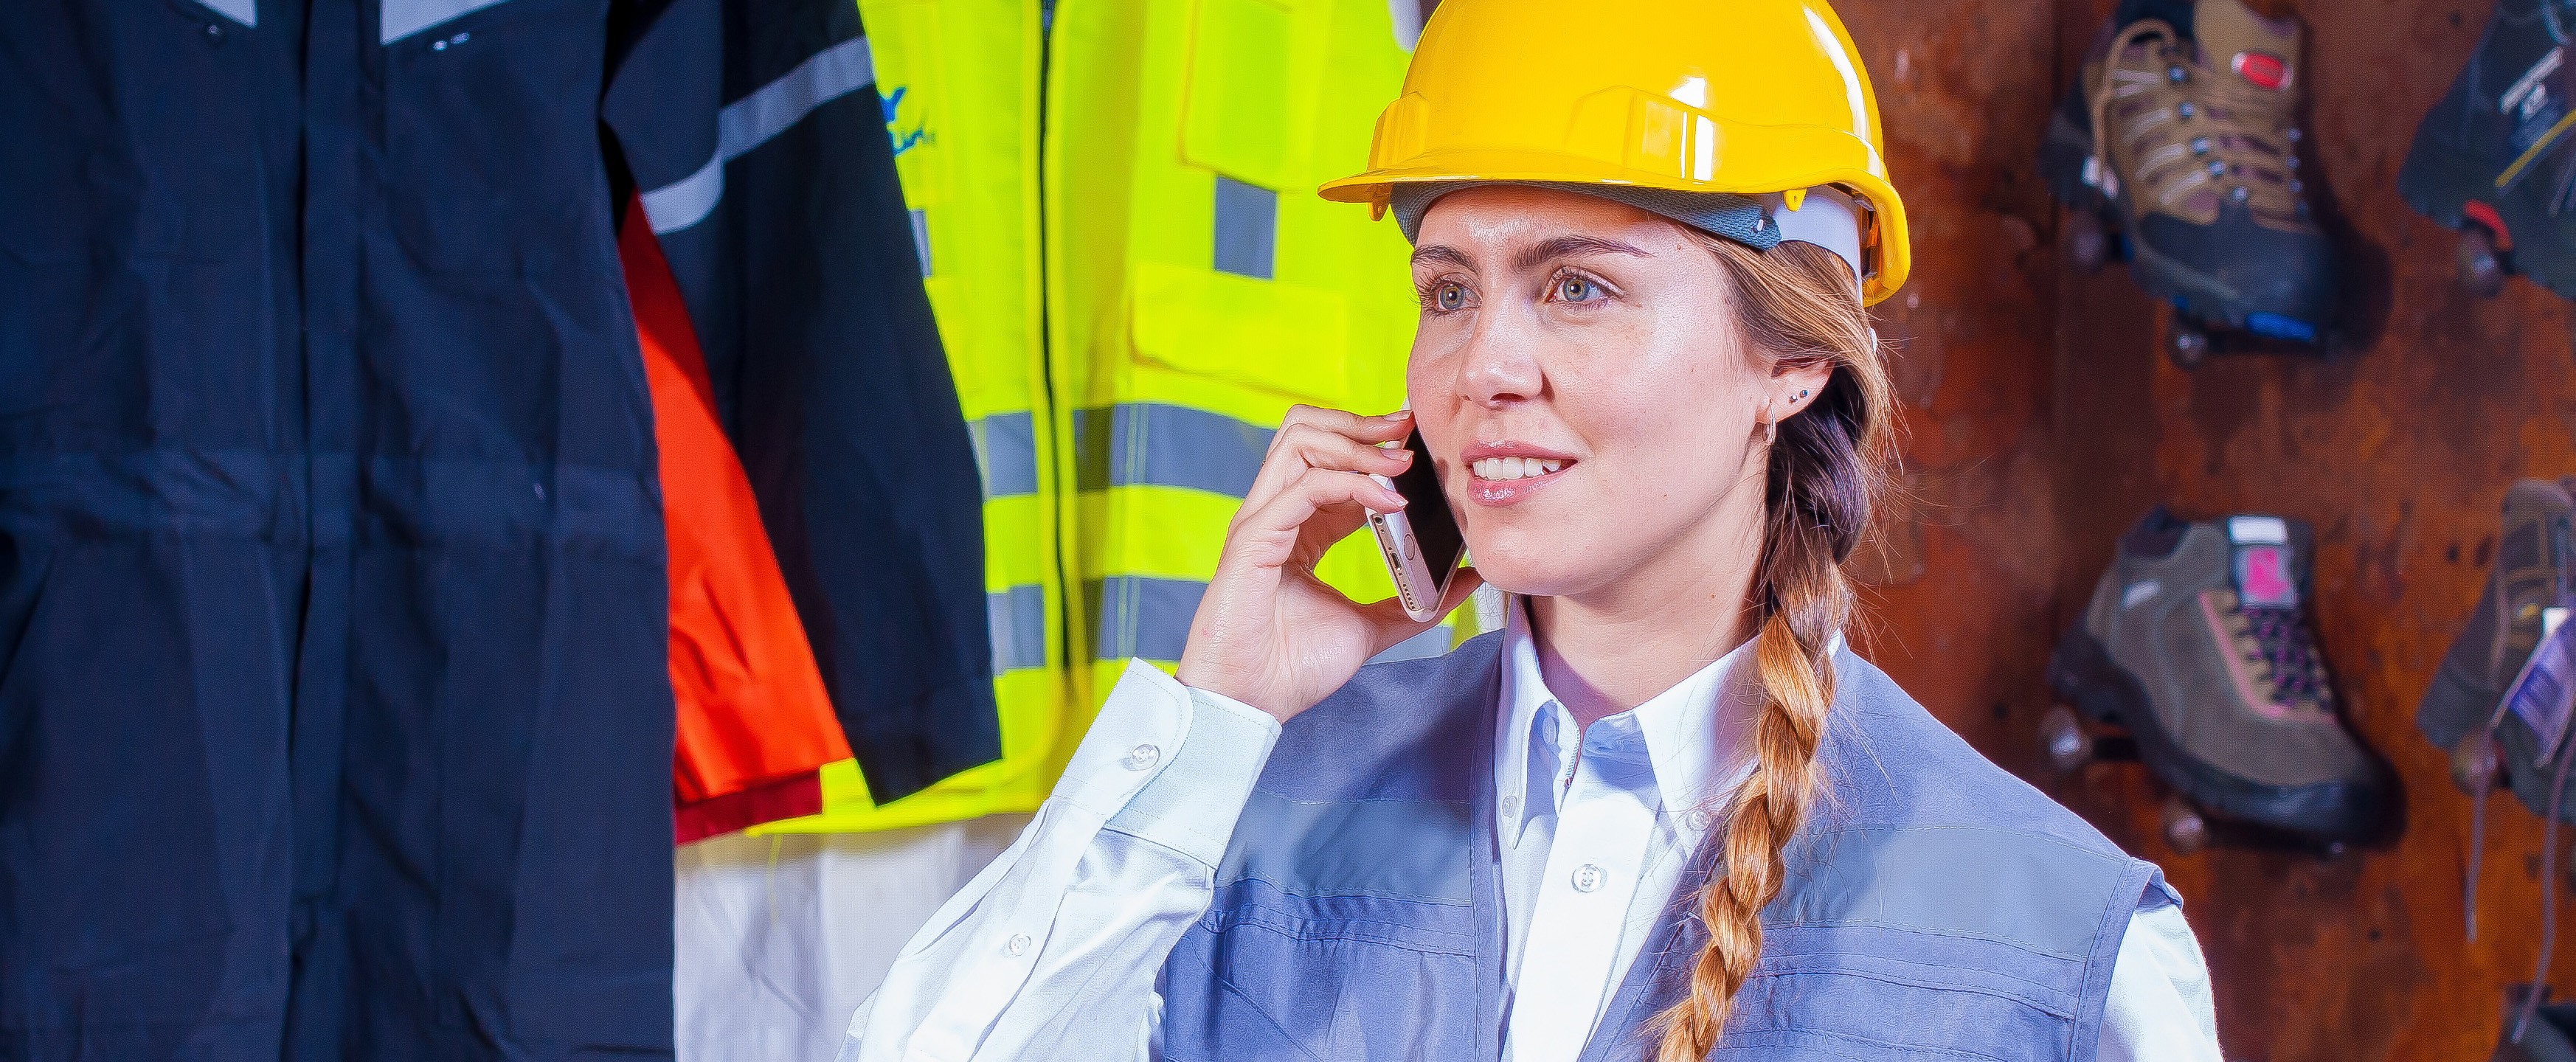 Safety in Building Practices